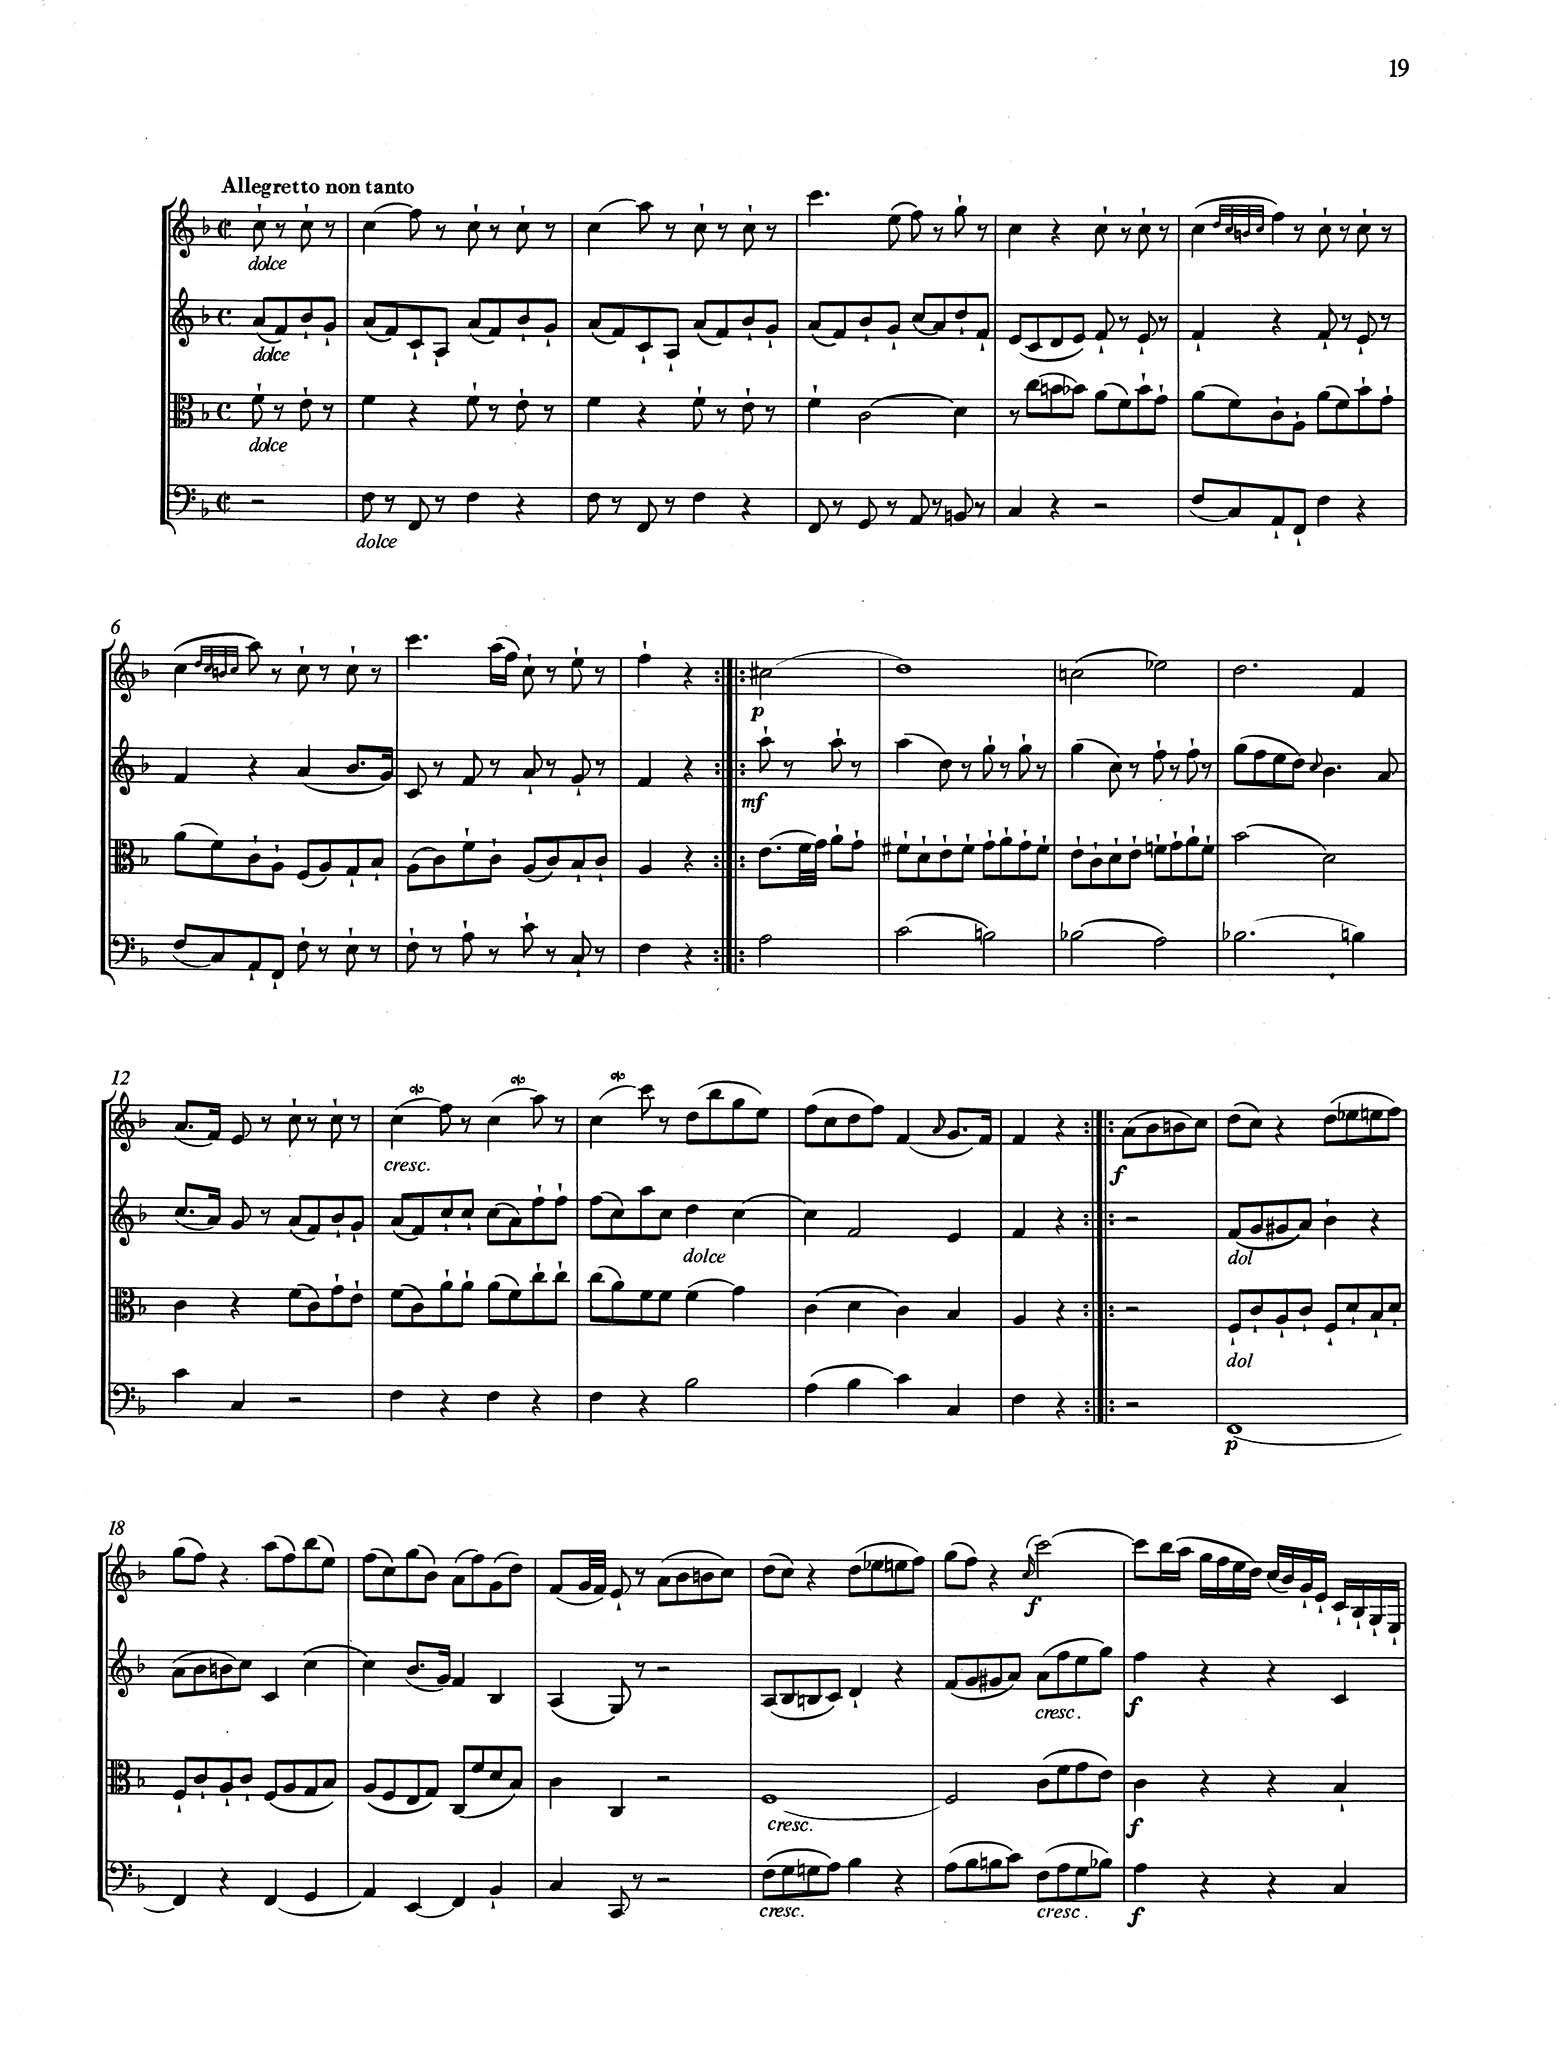 Piano Trio No. 1 in G Major, K. 496 - Movement 3